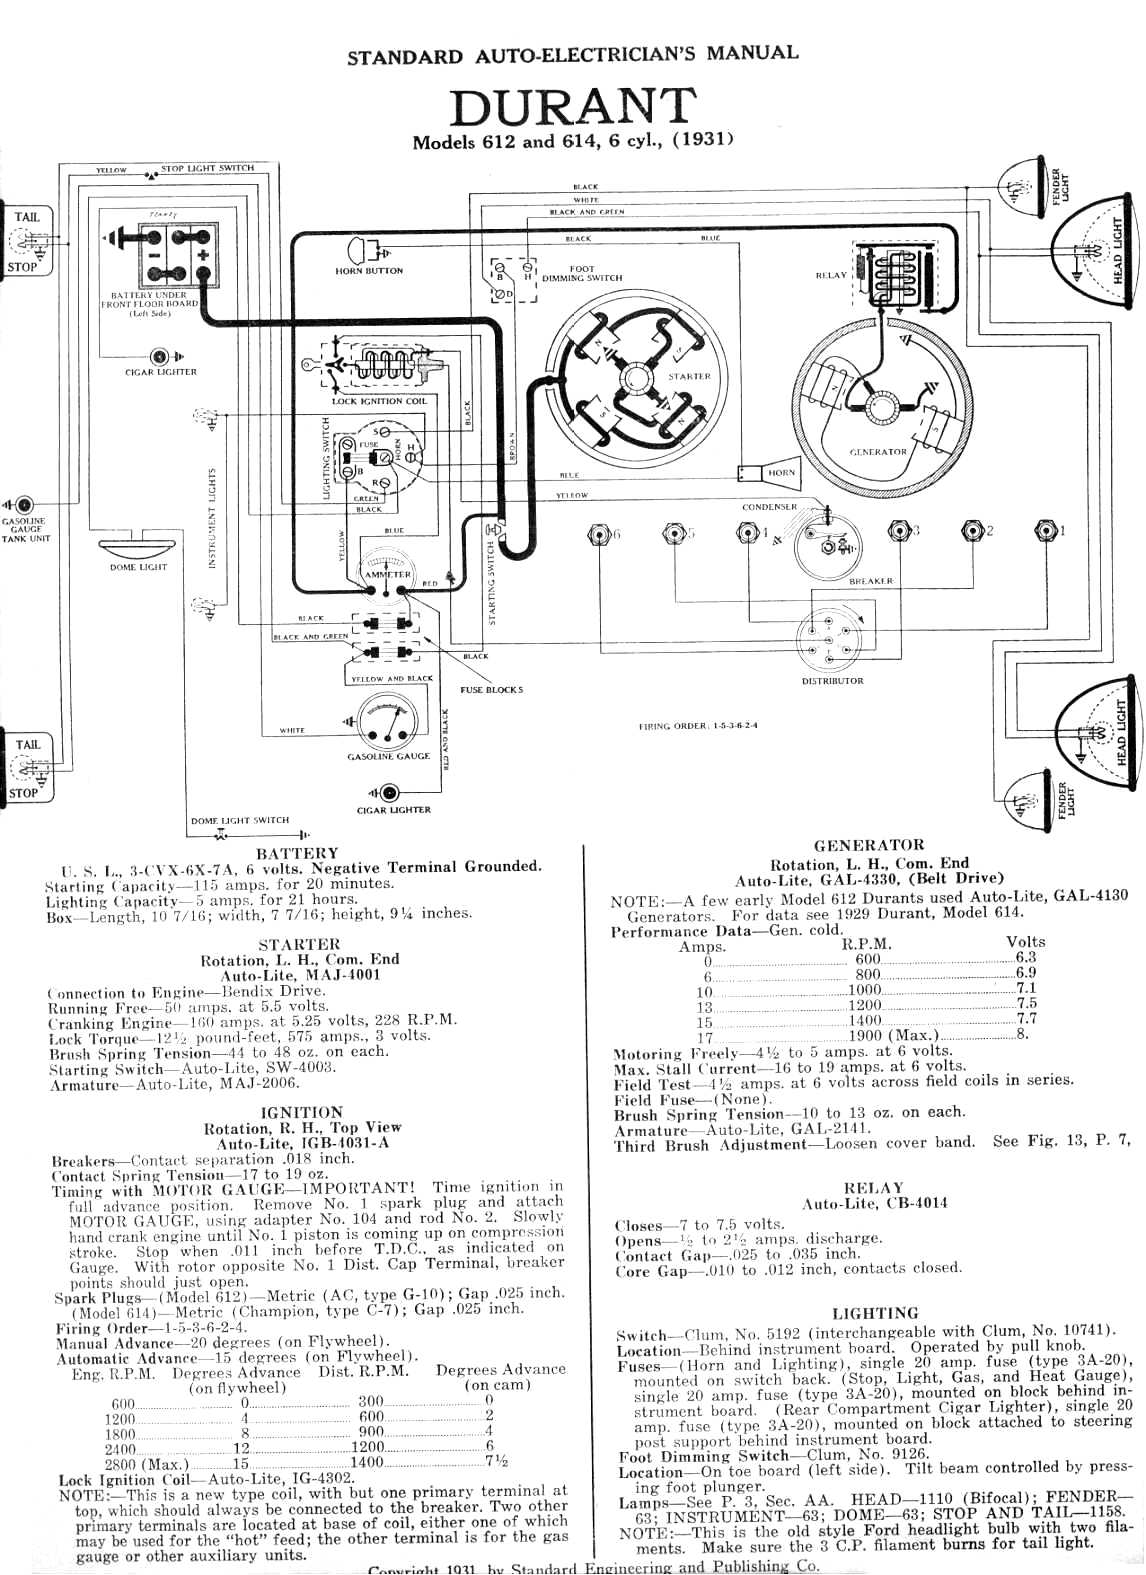 1929 model a ford wiring diagram